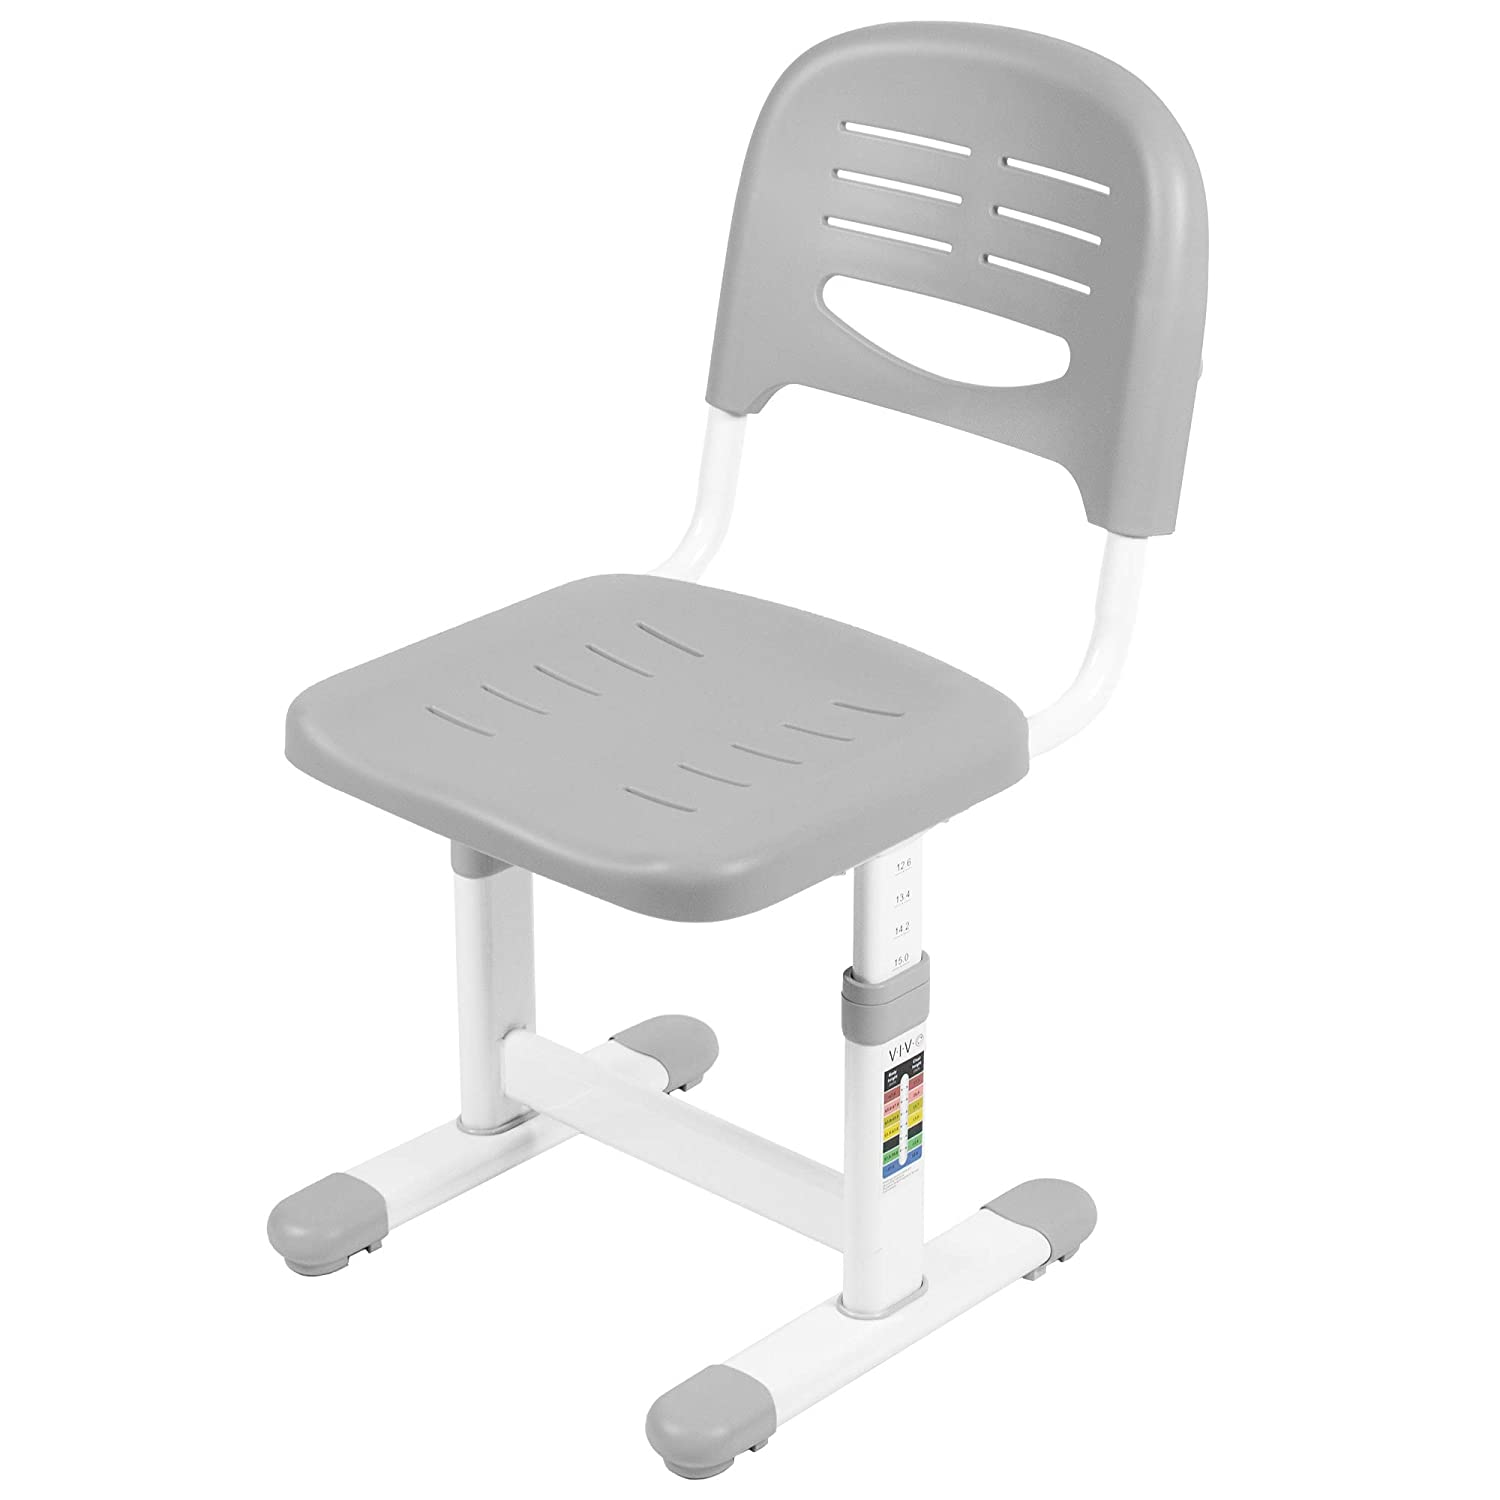 VIVO Gray Height Adjustable Kids Desk Chair (Chair Only) Designed for Interactive Workstation | Universal Children's Ergonomic Seat (DESK-V201G-CH)